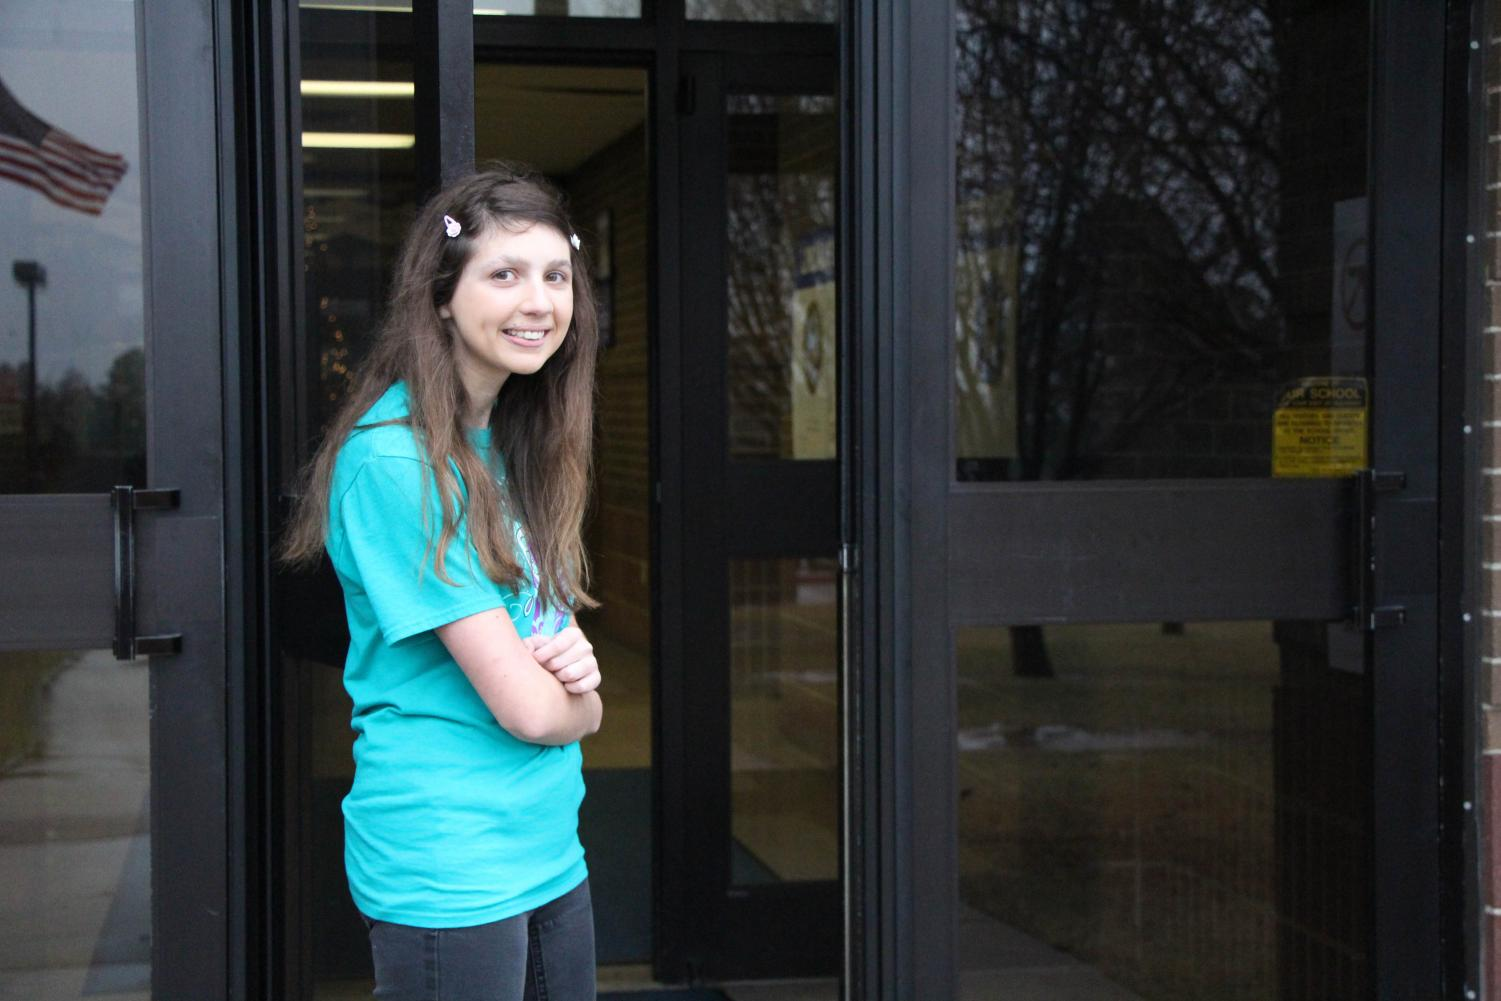 Gracie Tillary opens door for her fellow peers. She has been doing this every morning for the last few weeks.